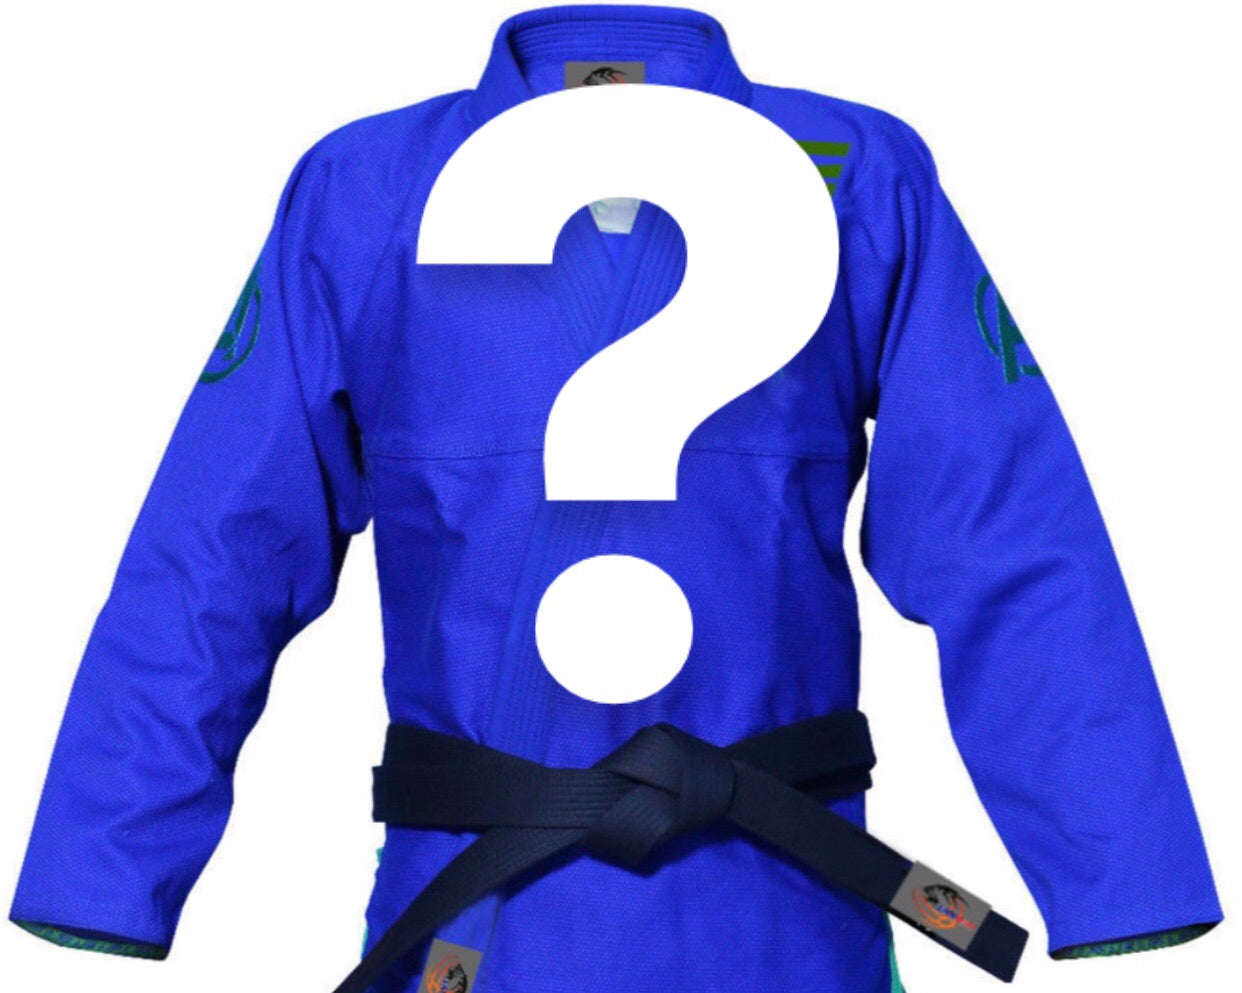 Mystery BJJ Gi - BLUE OR NAVY